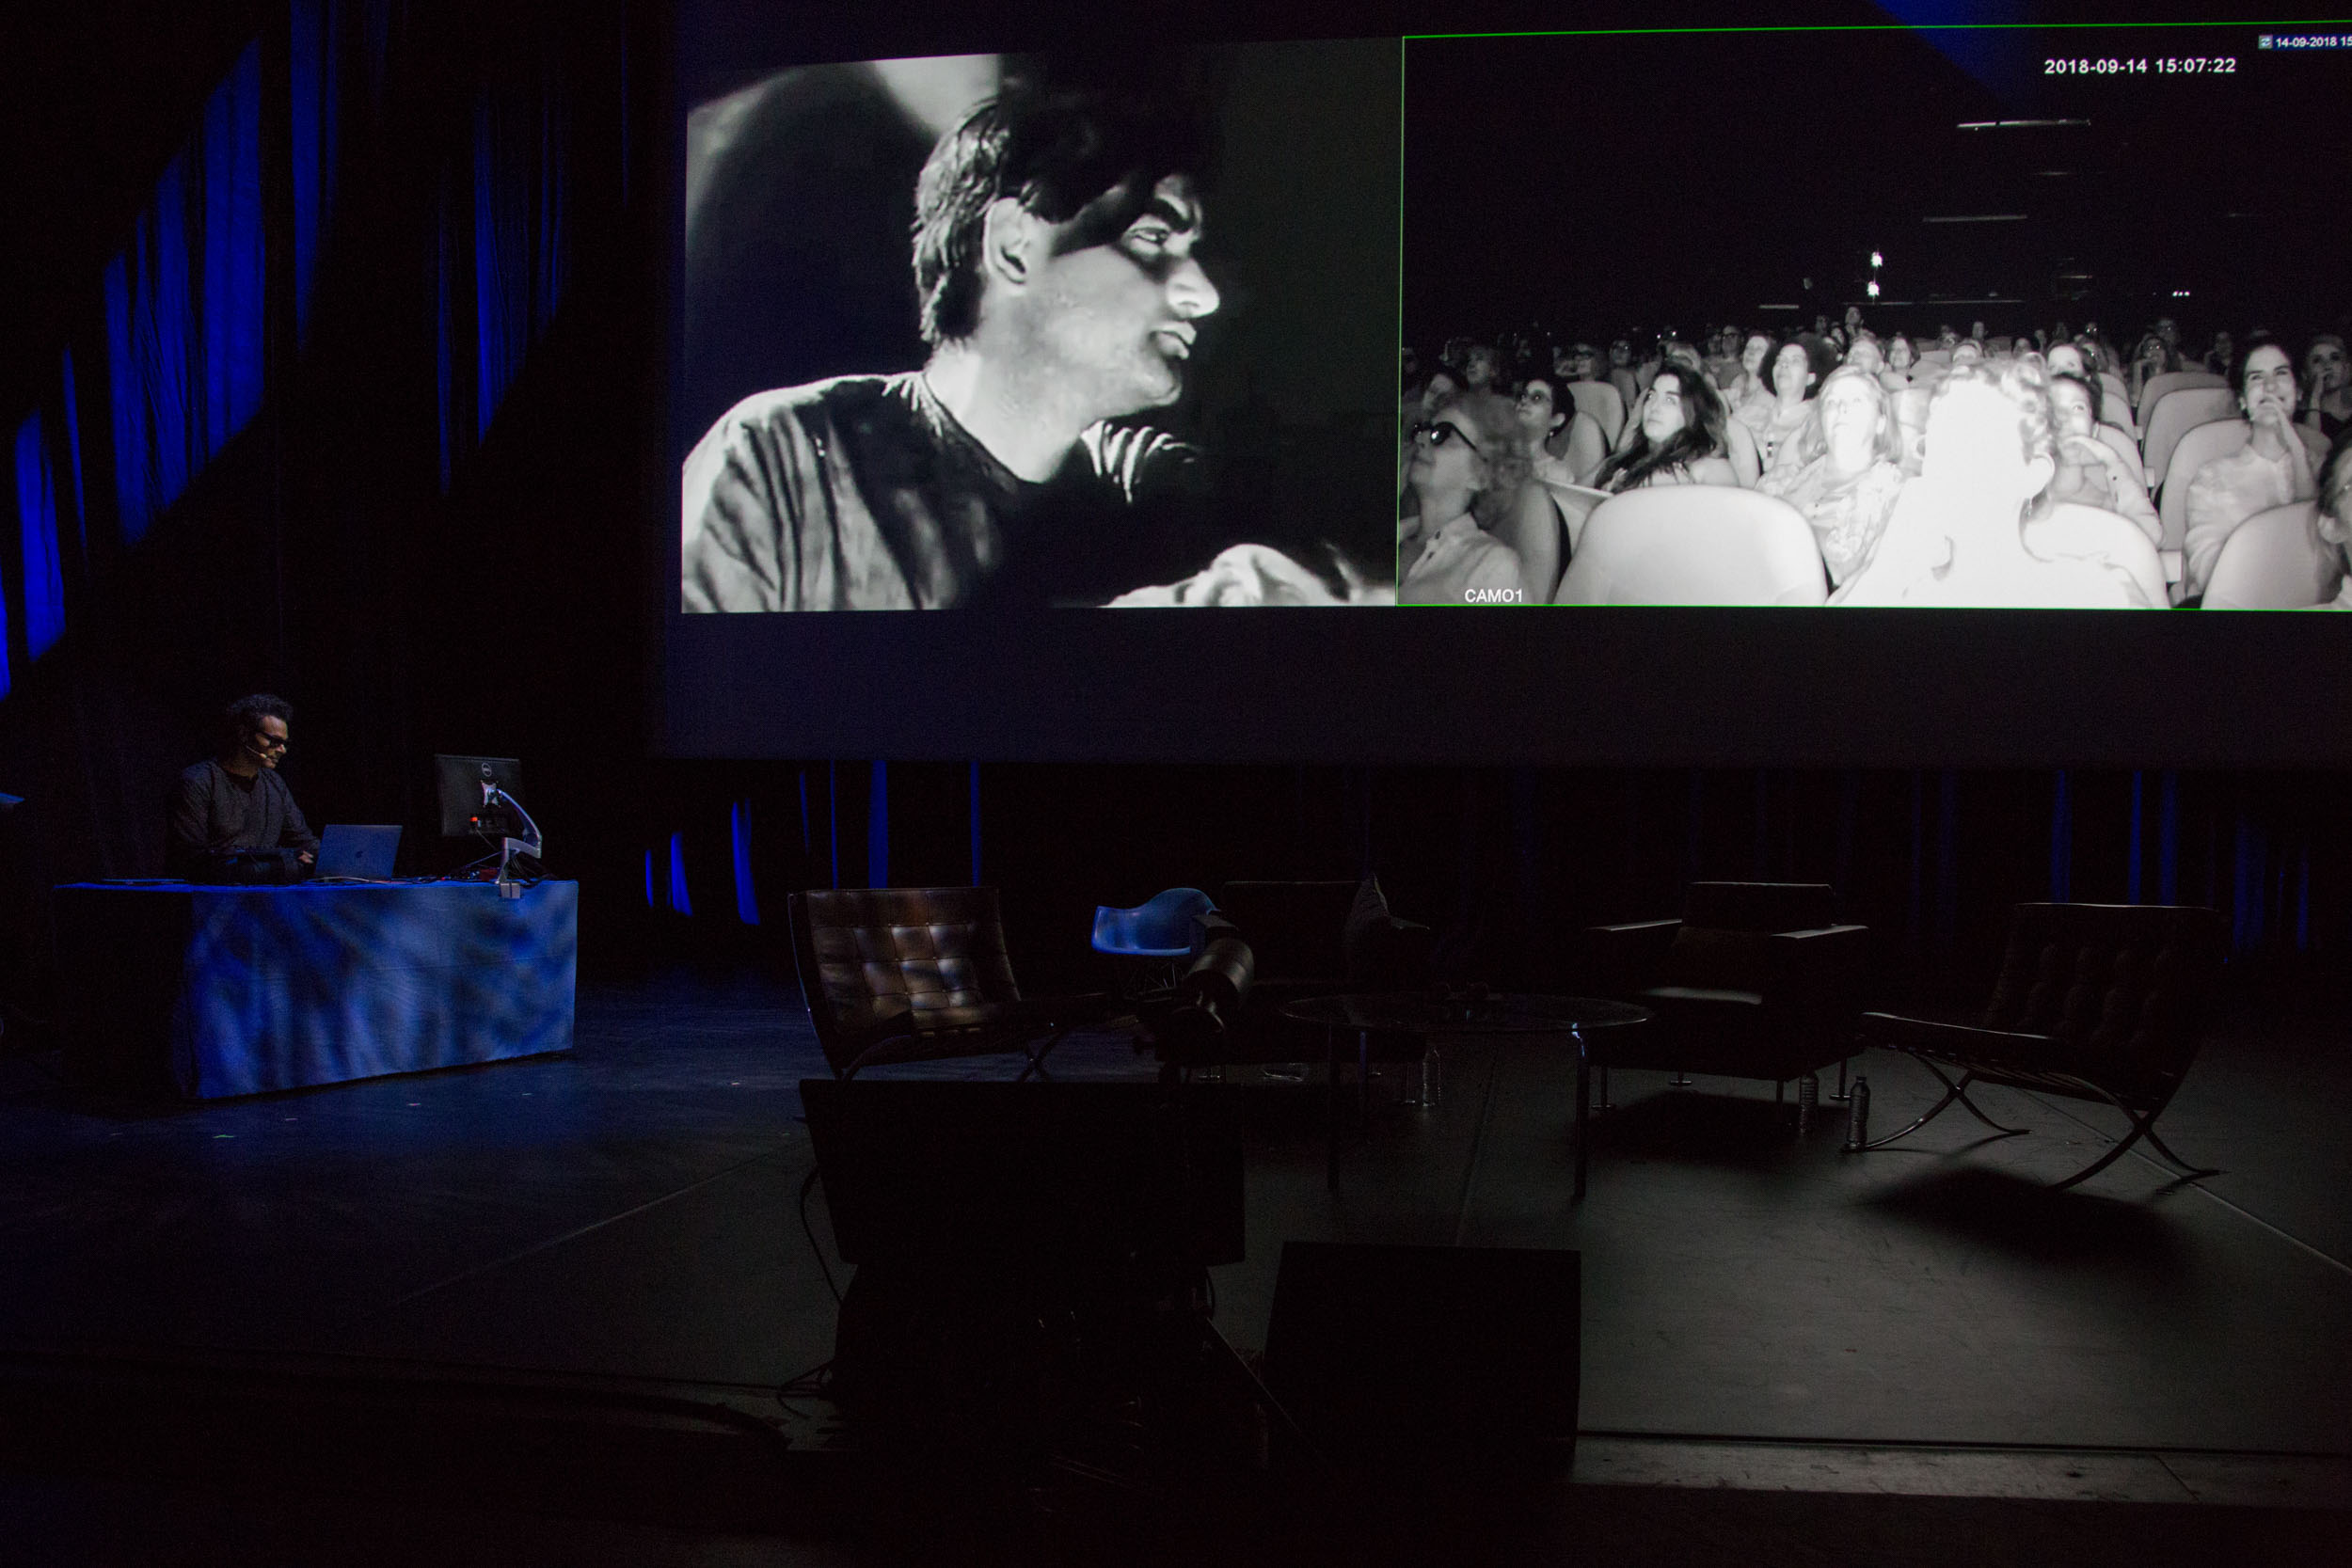 A music and video piece performed is played by the artist.  The video piece is composed of black and white silent films of various origins (Mexico, India, Japan, US) showing shots of characters showing intense emotions, and is displayed on the left half of the main screen in the performance space.  Eight video cameras capture the whole performance space, filming both the stage and the audience.  The cameras are switched to infrared mode so as to obtain a black and white image.  (click Next to read on)